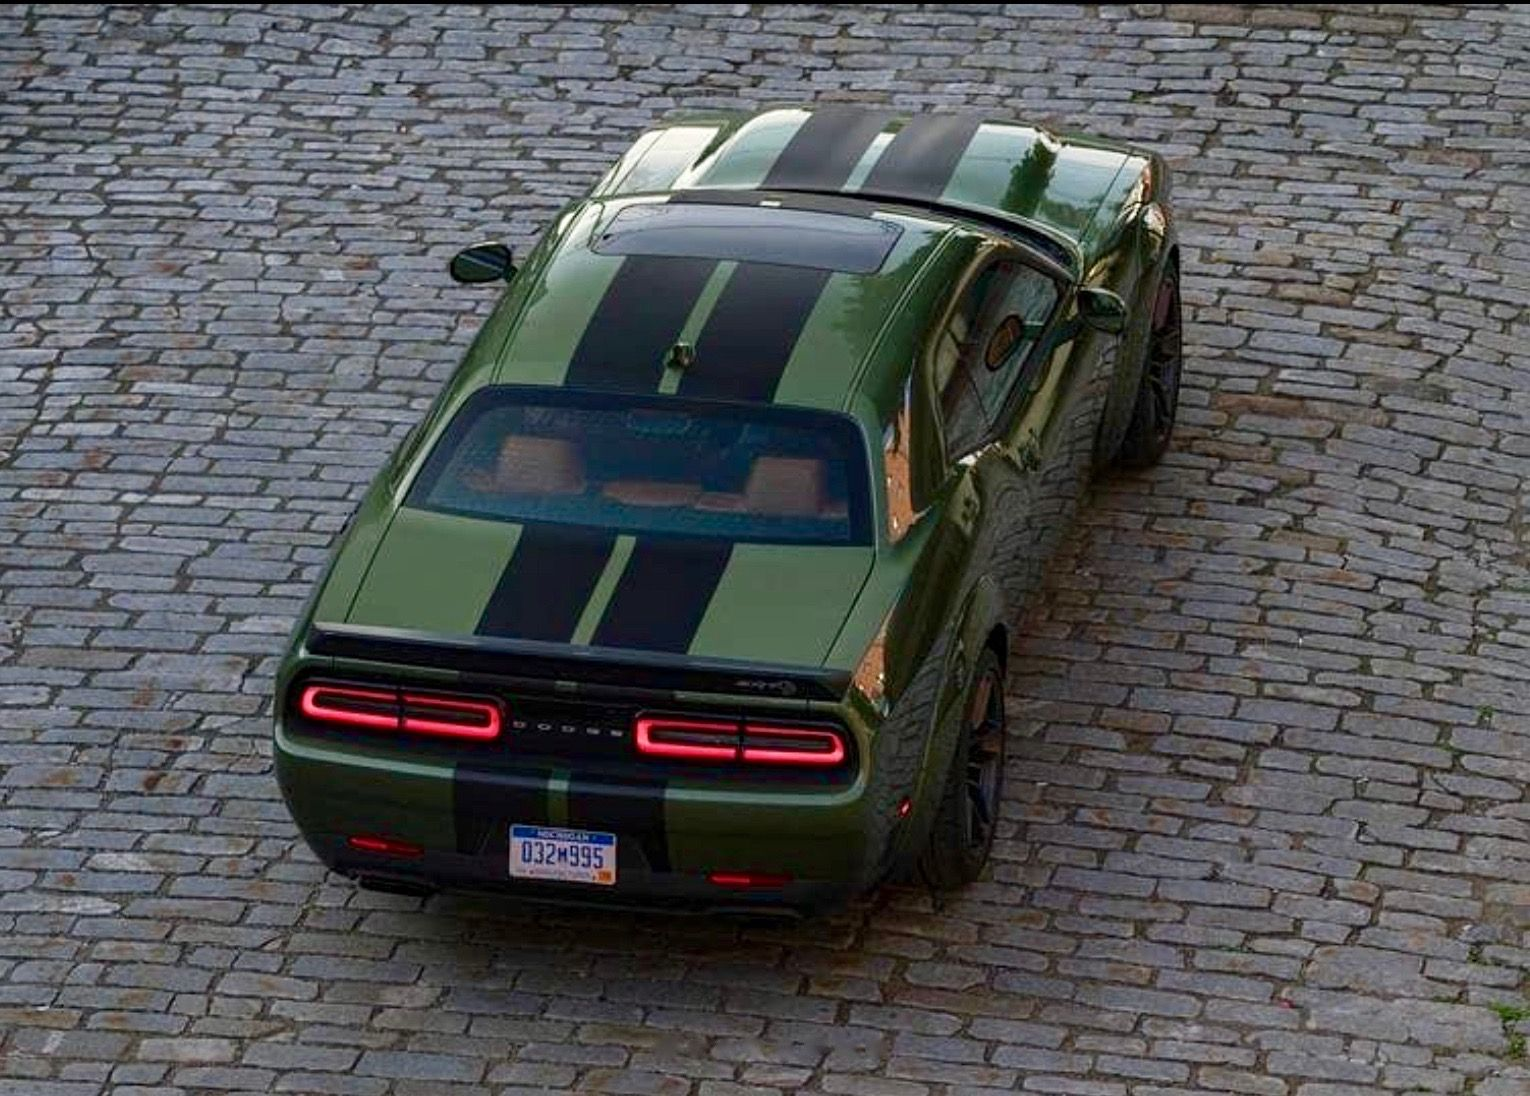 2019 Dodge Challenger Srt Hellcat Redeye In F8 Green With Dual